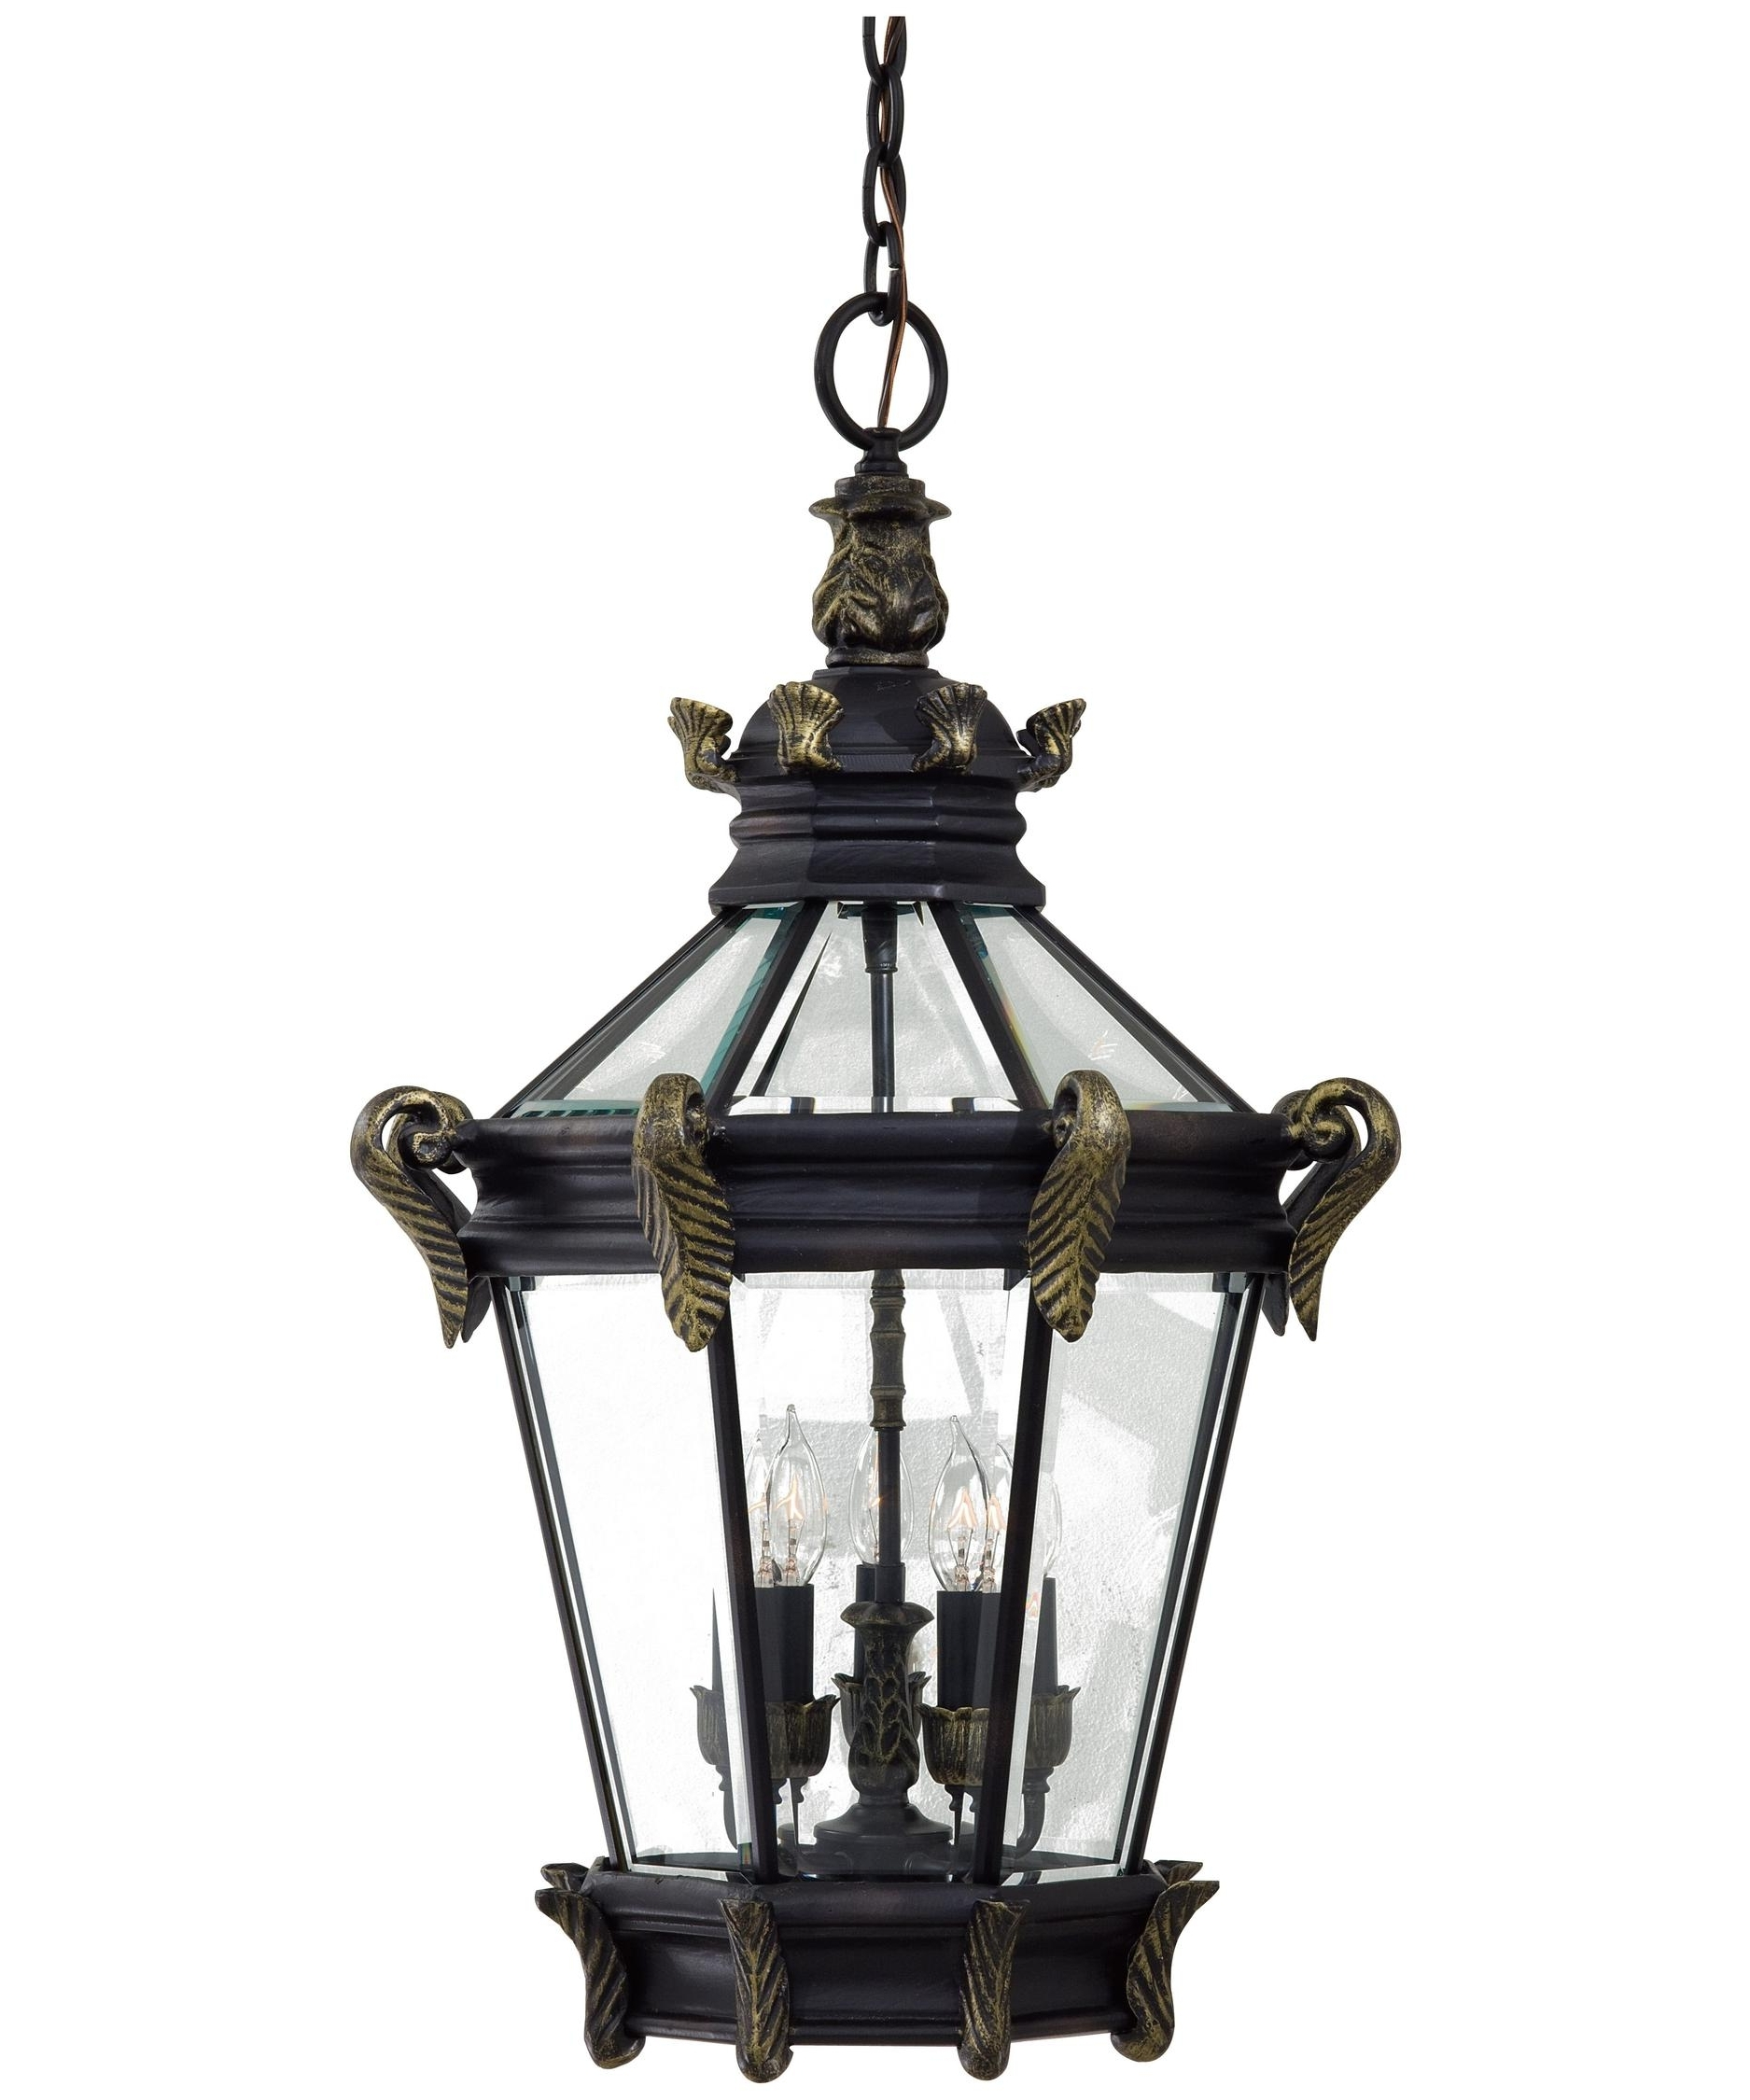 Popular Minka Lavery 8934 Stratford Hall 19 Inch Wide 5 Light Outdoor For Outdoor Ceiling Hanging Lights (View 15 of 20)